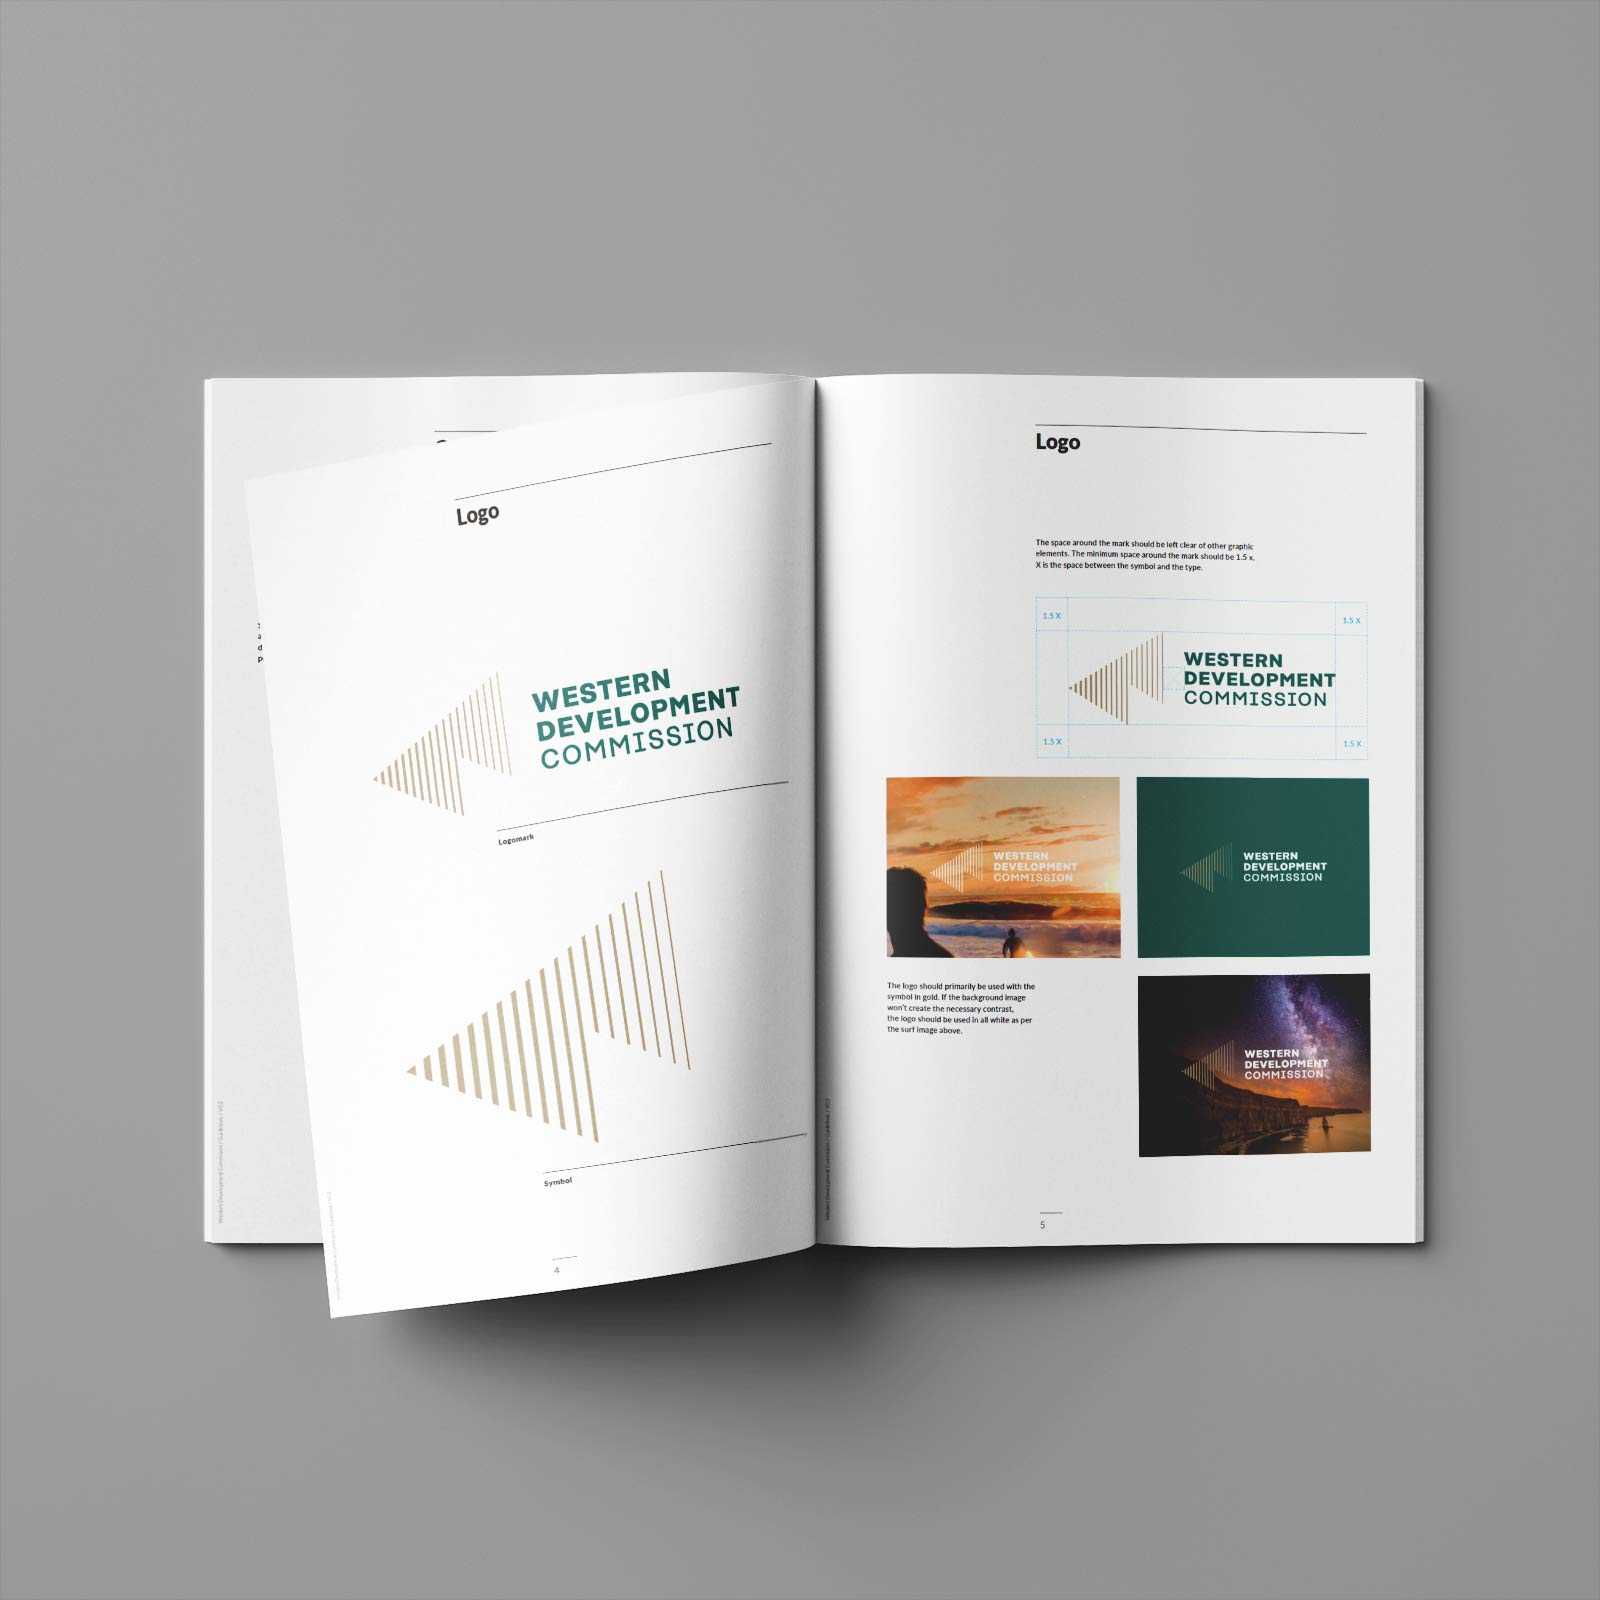 Western Development Commission Brand Guidelines